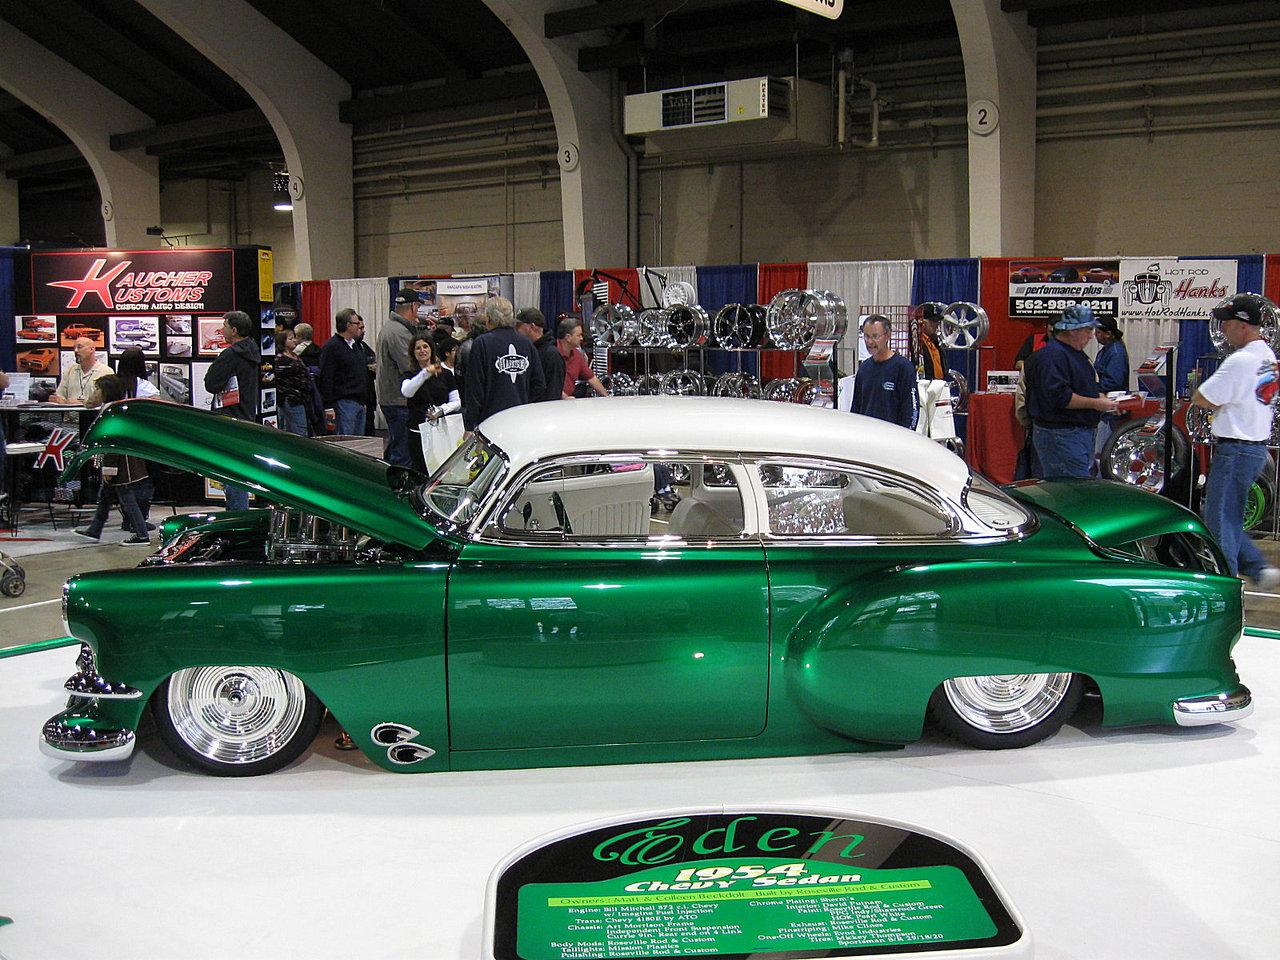 Free Download Lowrider Wallpapers Hd Download 1280x960 For